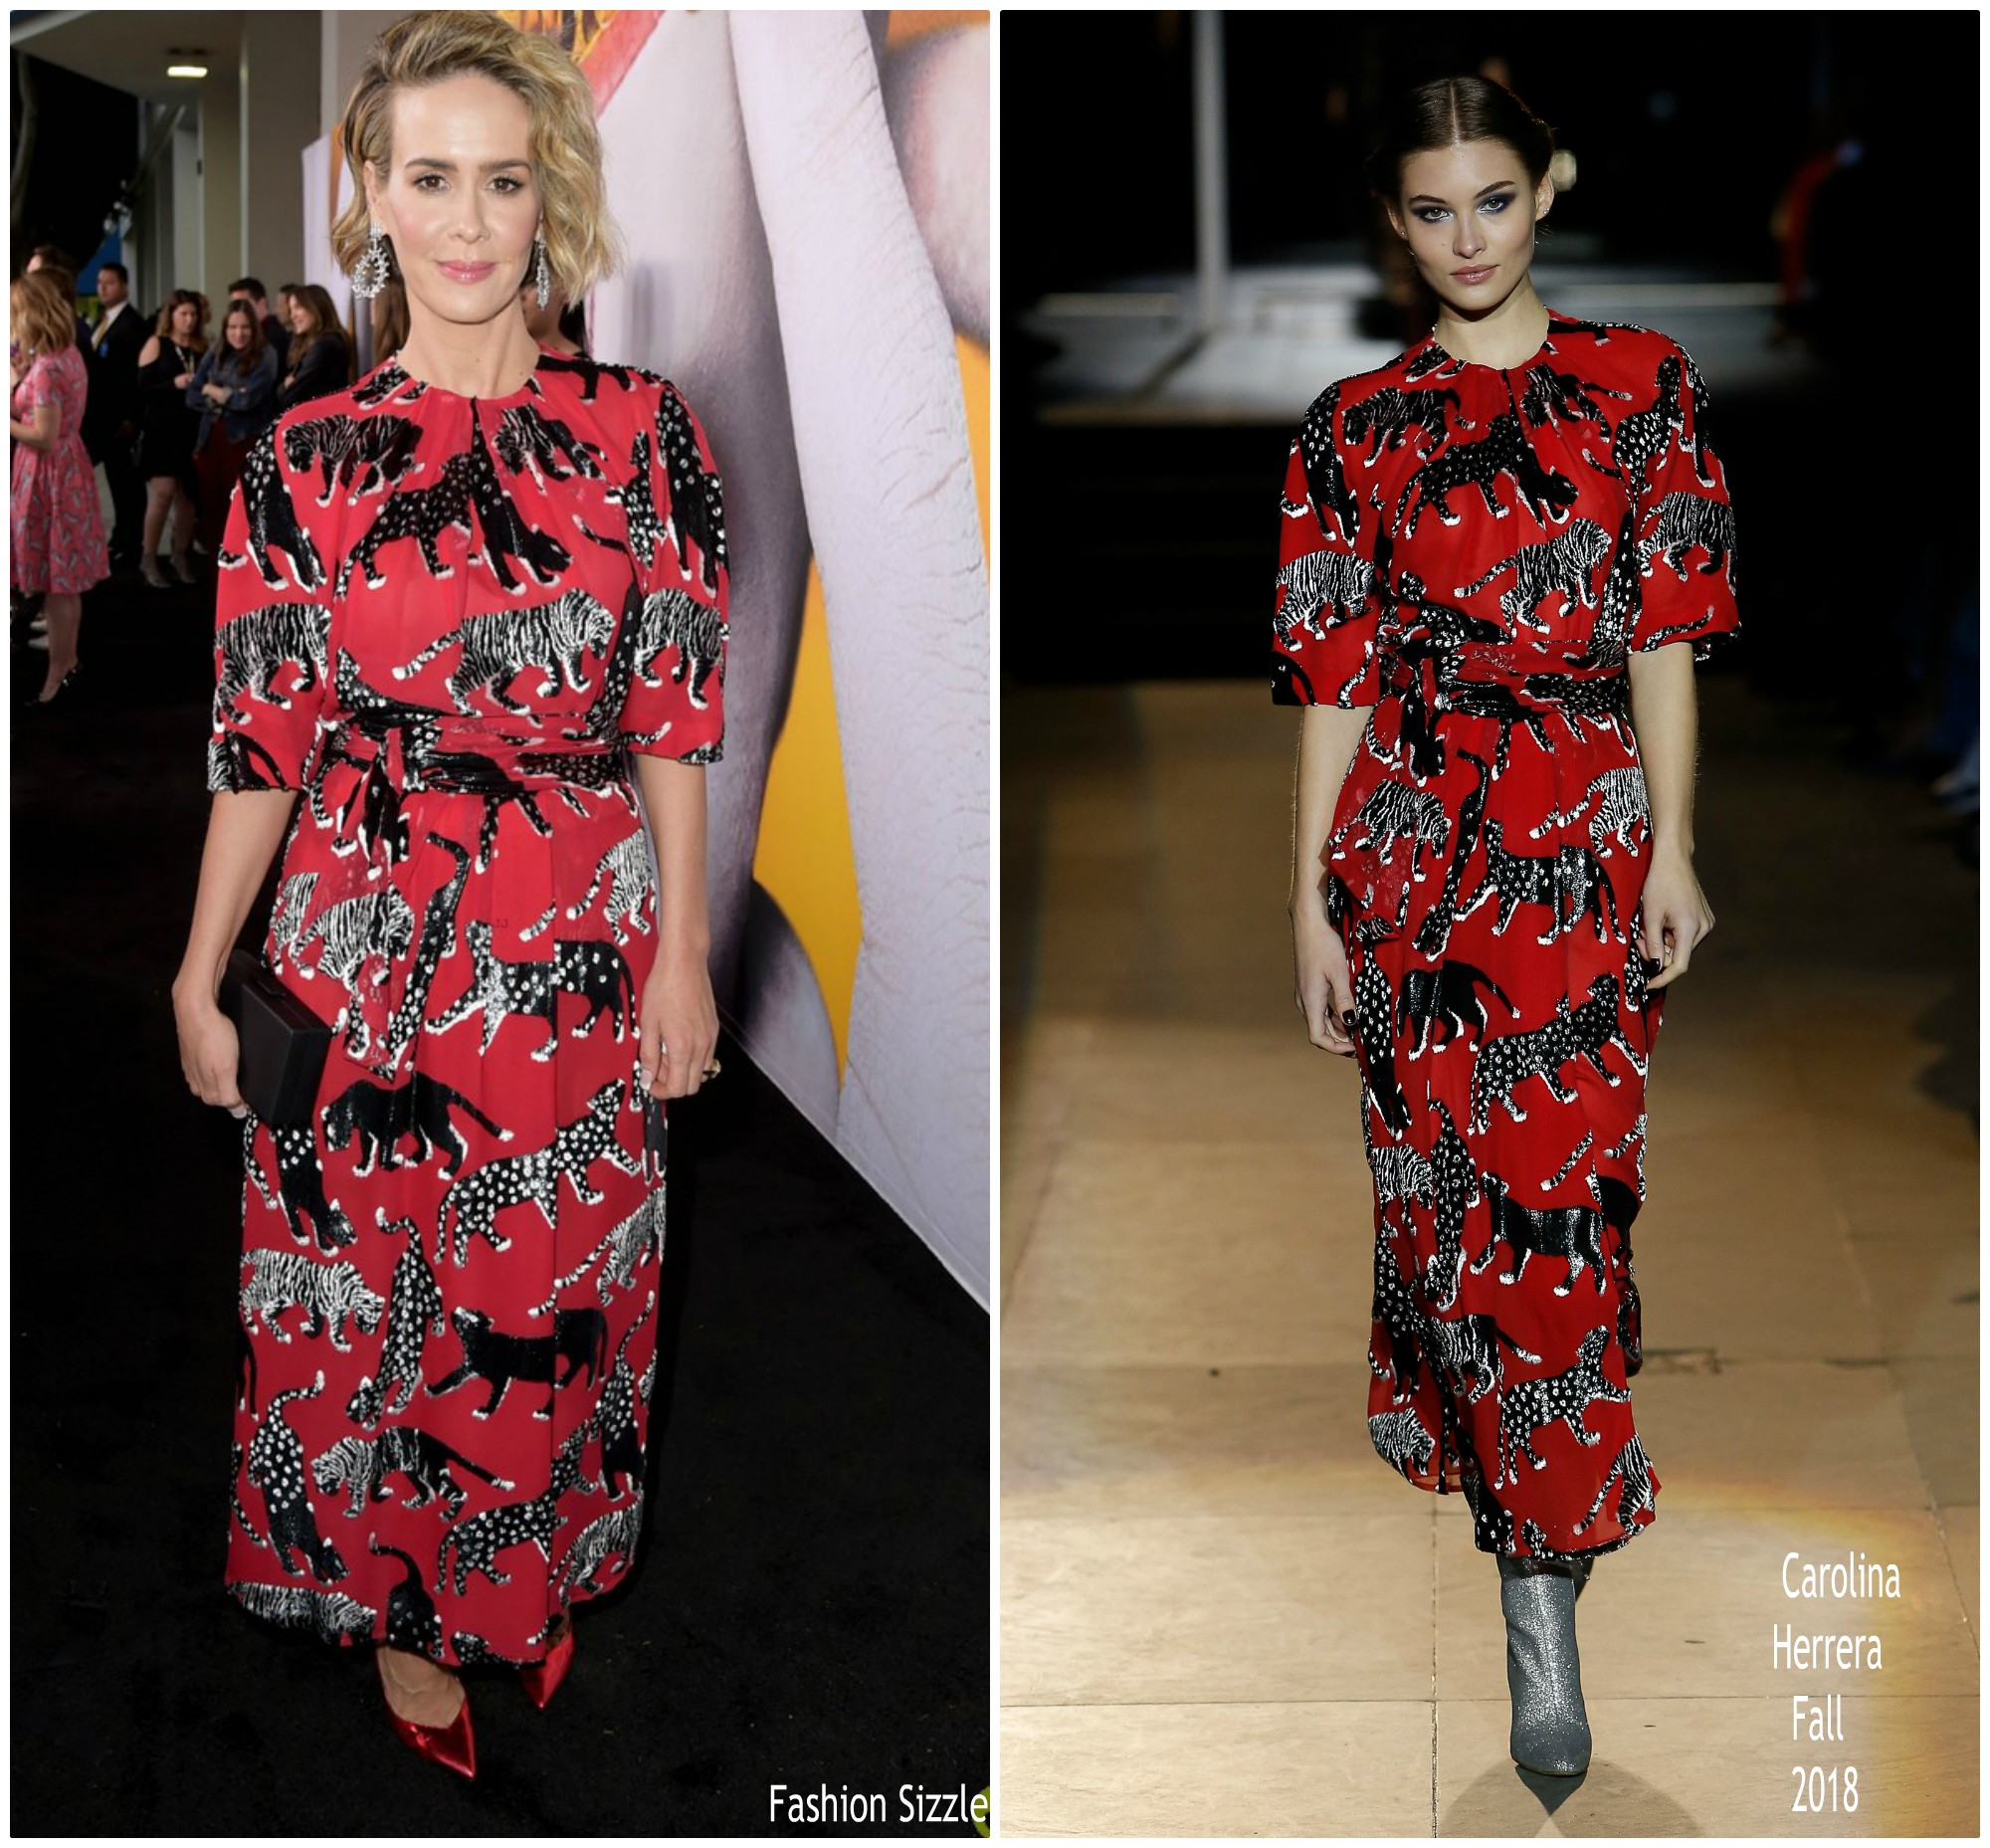 sarah-paulson-in-carolina-herrera-american-horror-story-cult-for-your-consideration-event